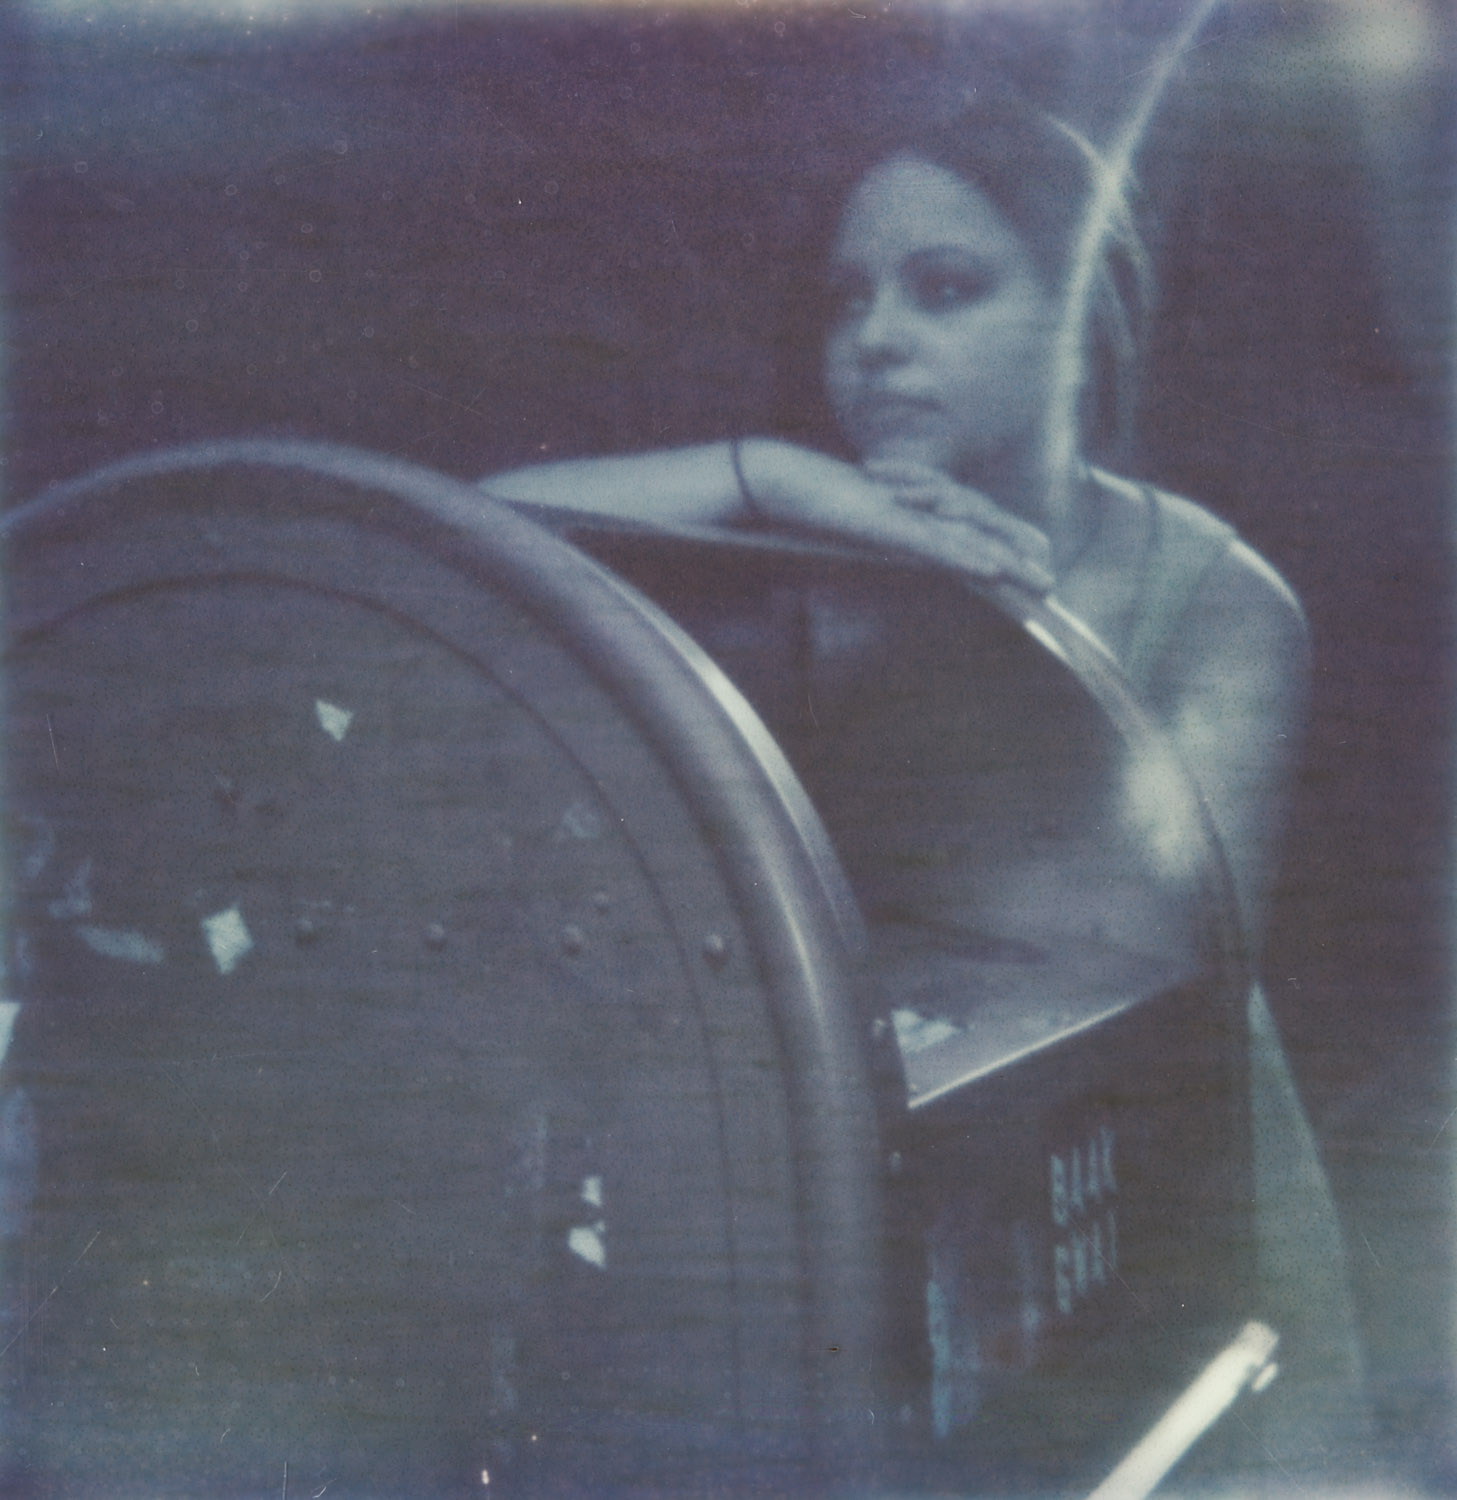 The only picture of a mailbox I could find. Taken with the Impossible Project's first attempt at color film many years ago.